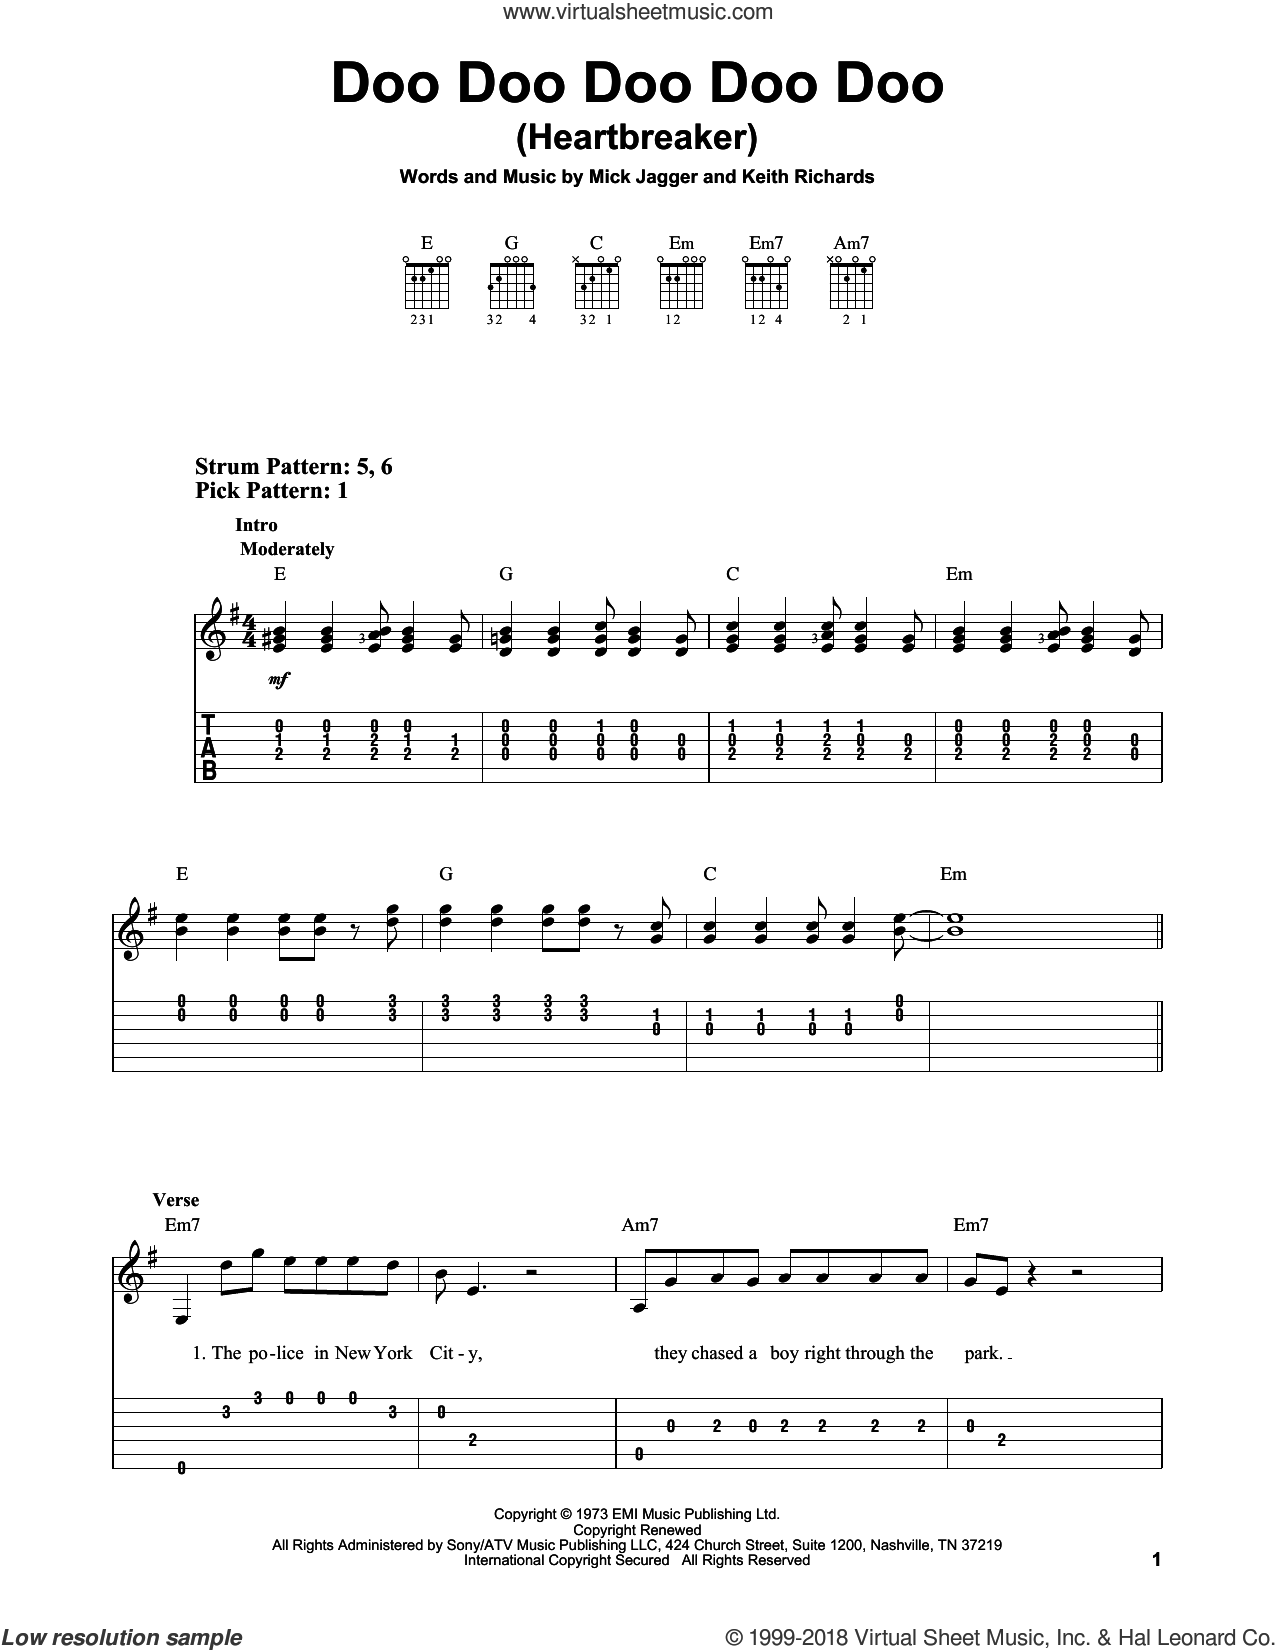 Doo Doo Doo Doo Doo (Heartbreaker) sheet music for guitar solo (easy tablature) by The Rolling Stones, Keith Richards and Mick Jagger, easy guitar (easy tablature)